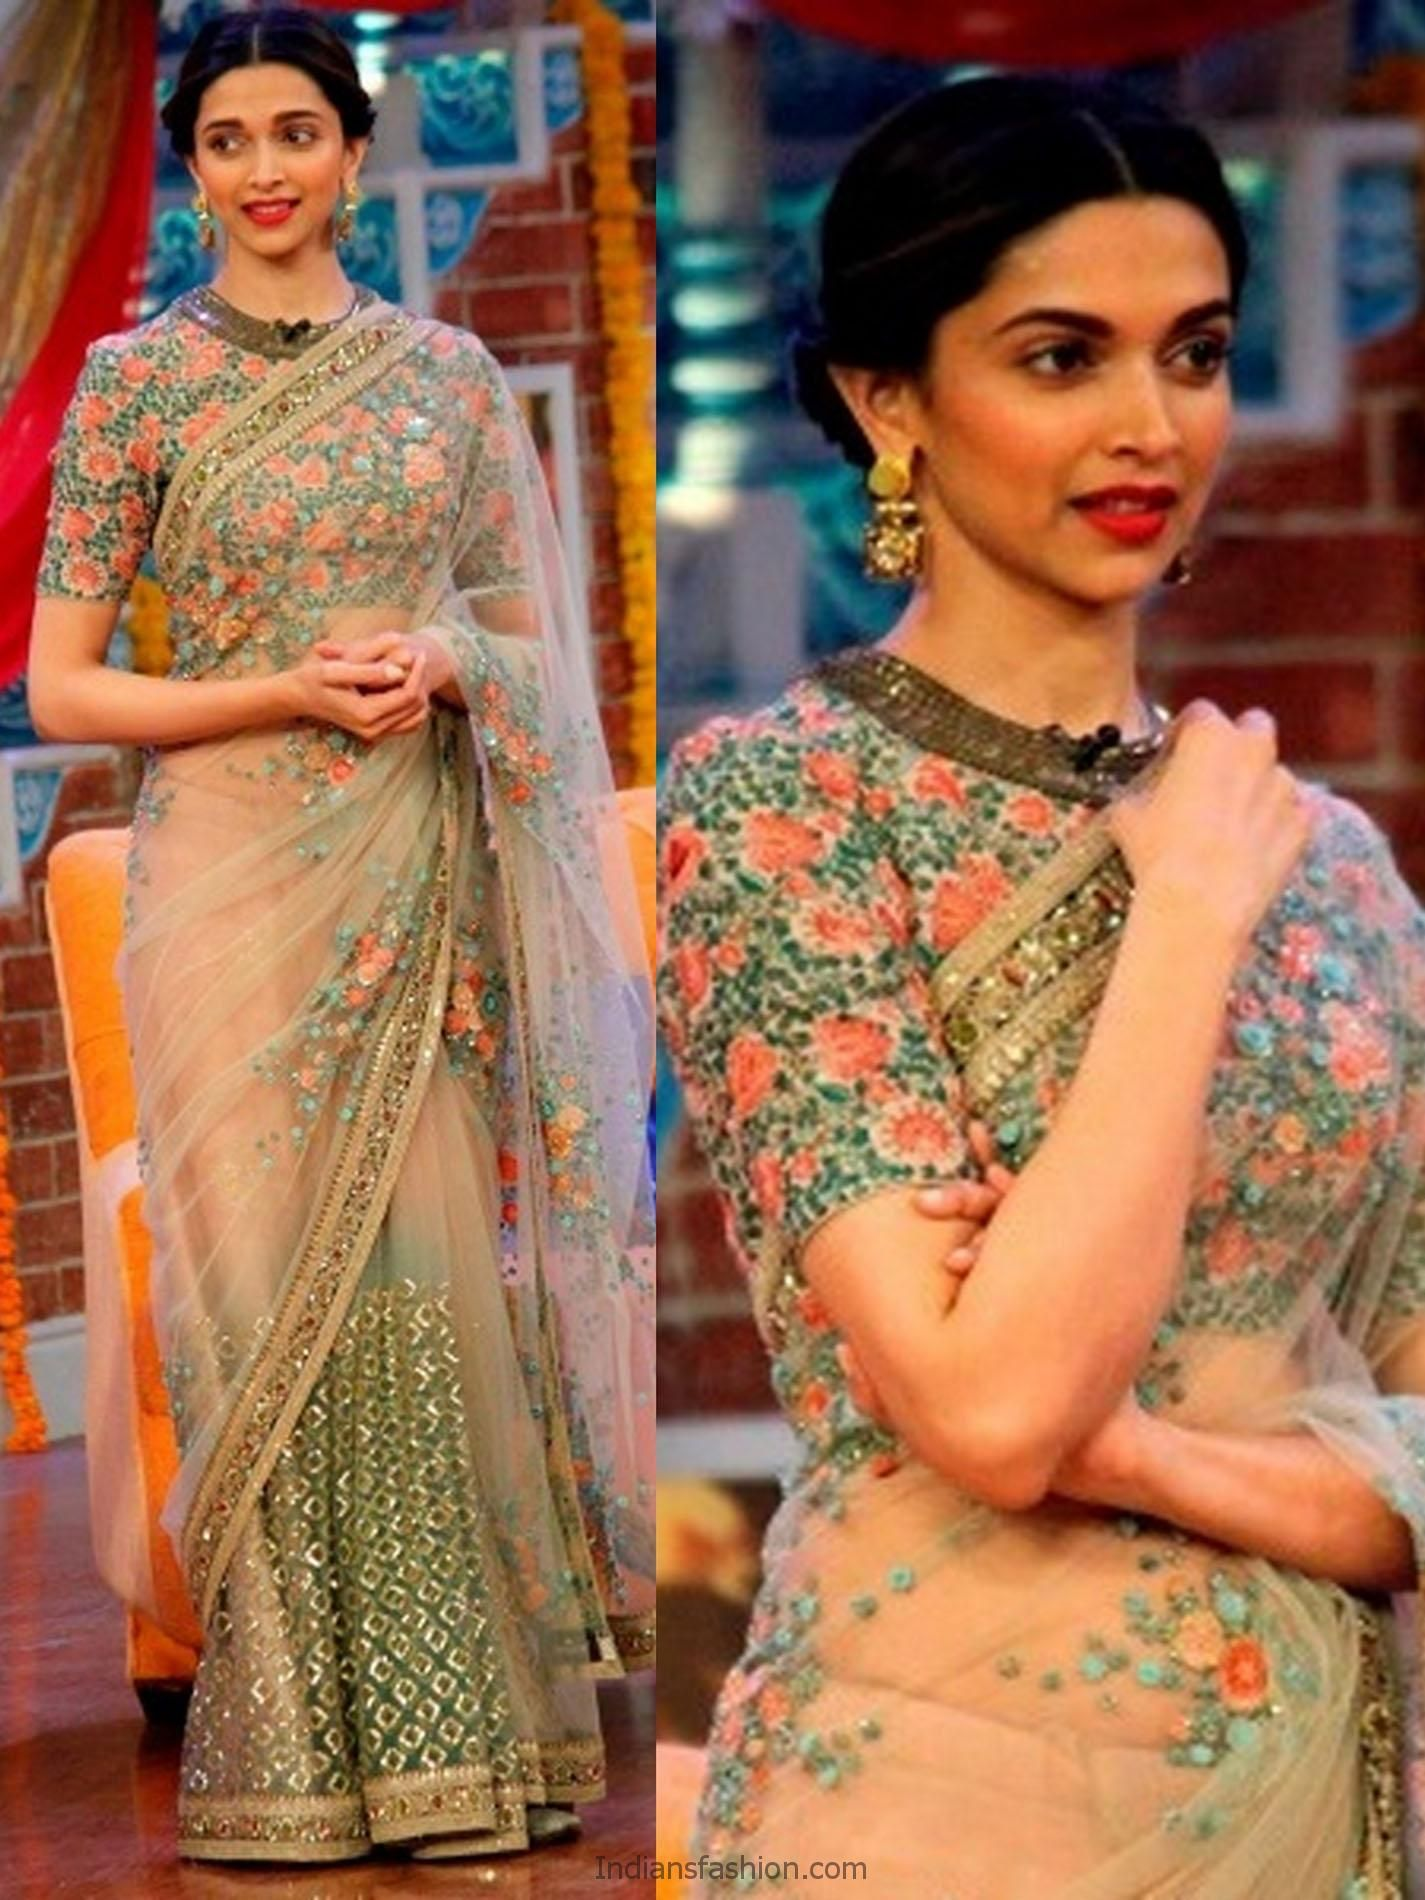 Intricate Floral Embroidered Blouse Worn By Deepika Read More Http Fas Blouse Designs High Neck Designer Saree Blouse Patterns Designer Sarees By Sabyasachi